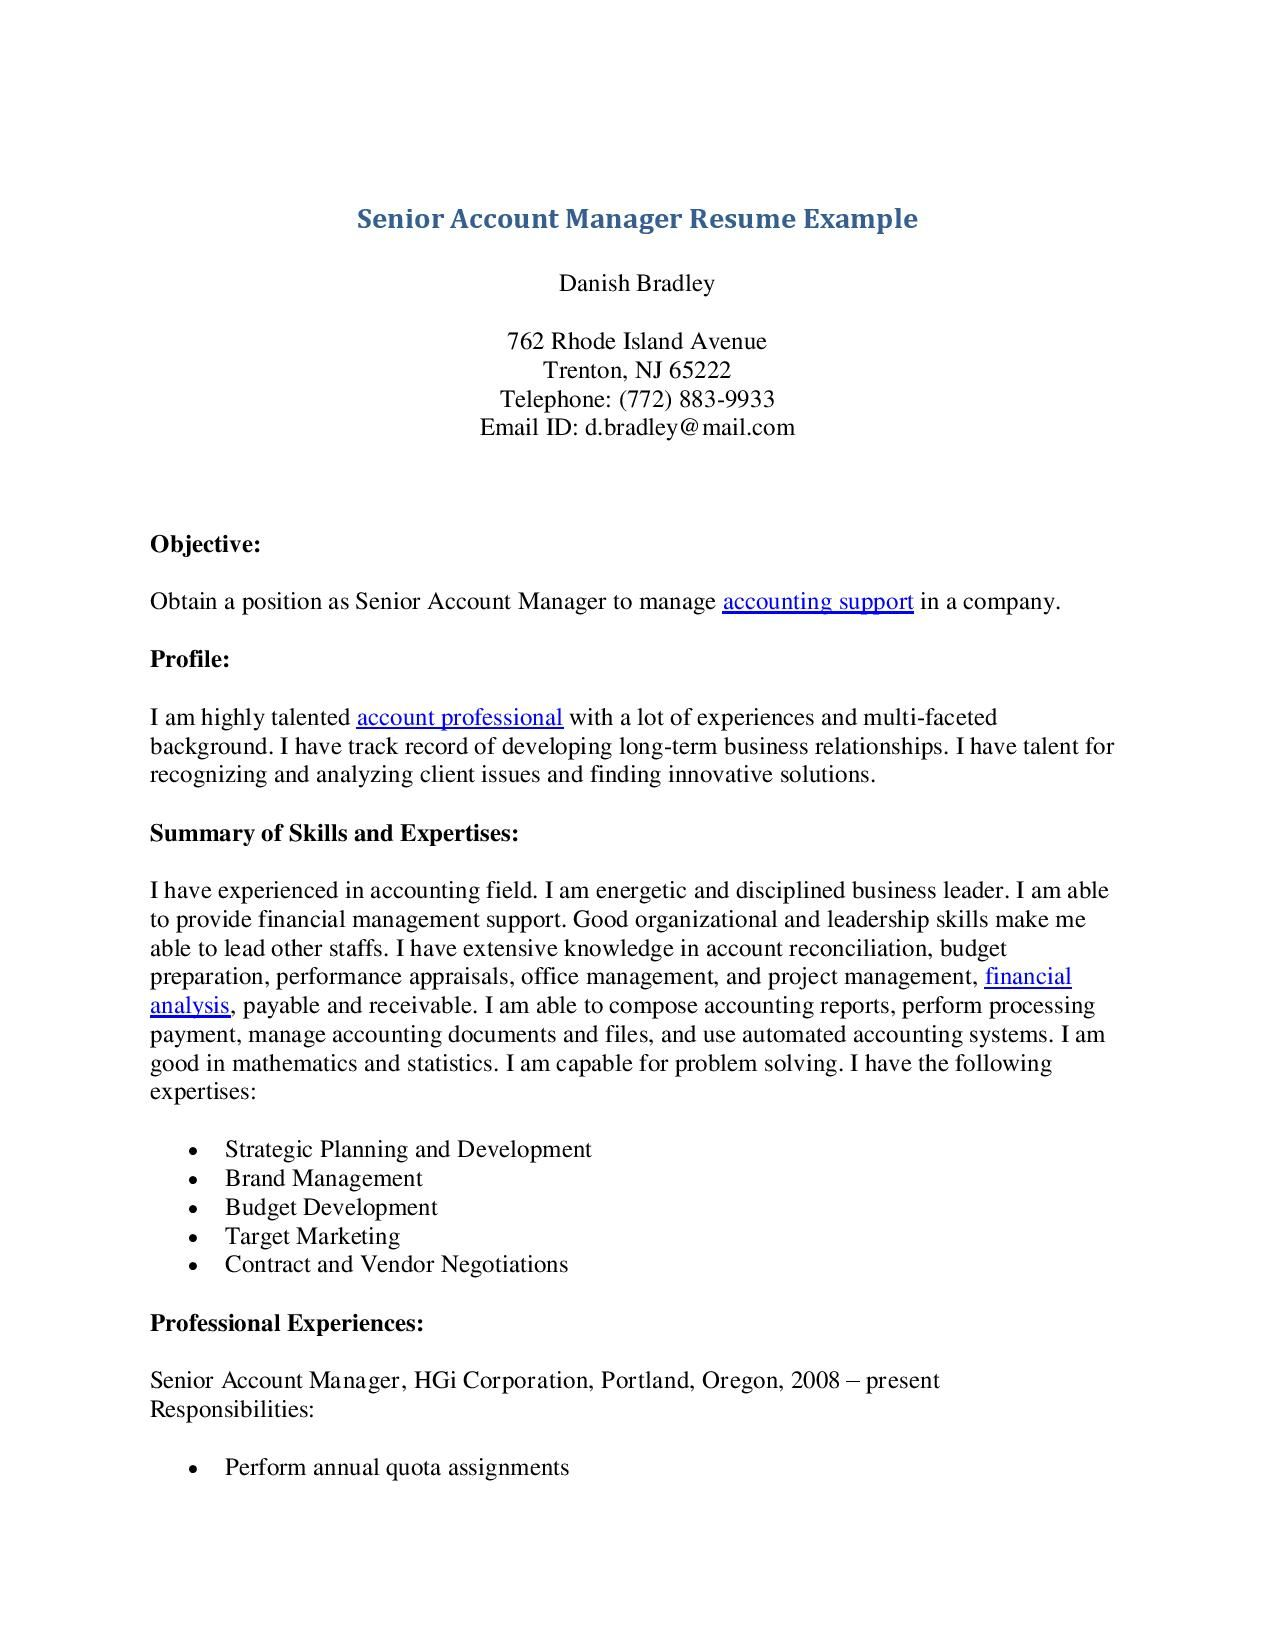 Senior Account Manager Resume Example Senior Account